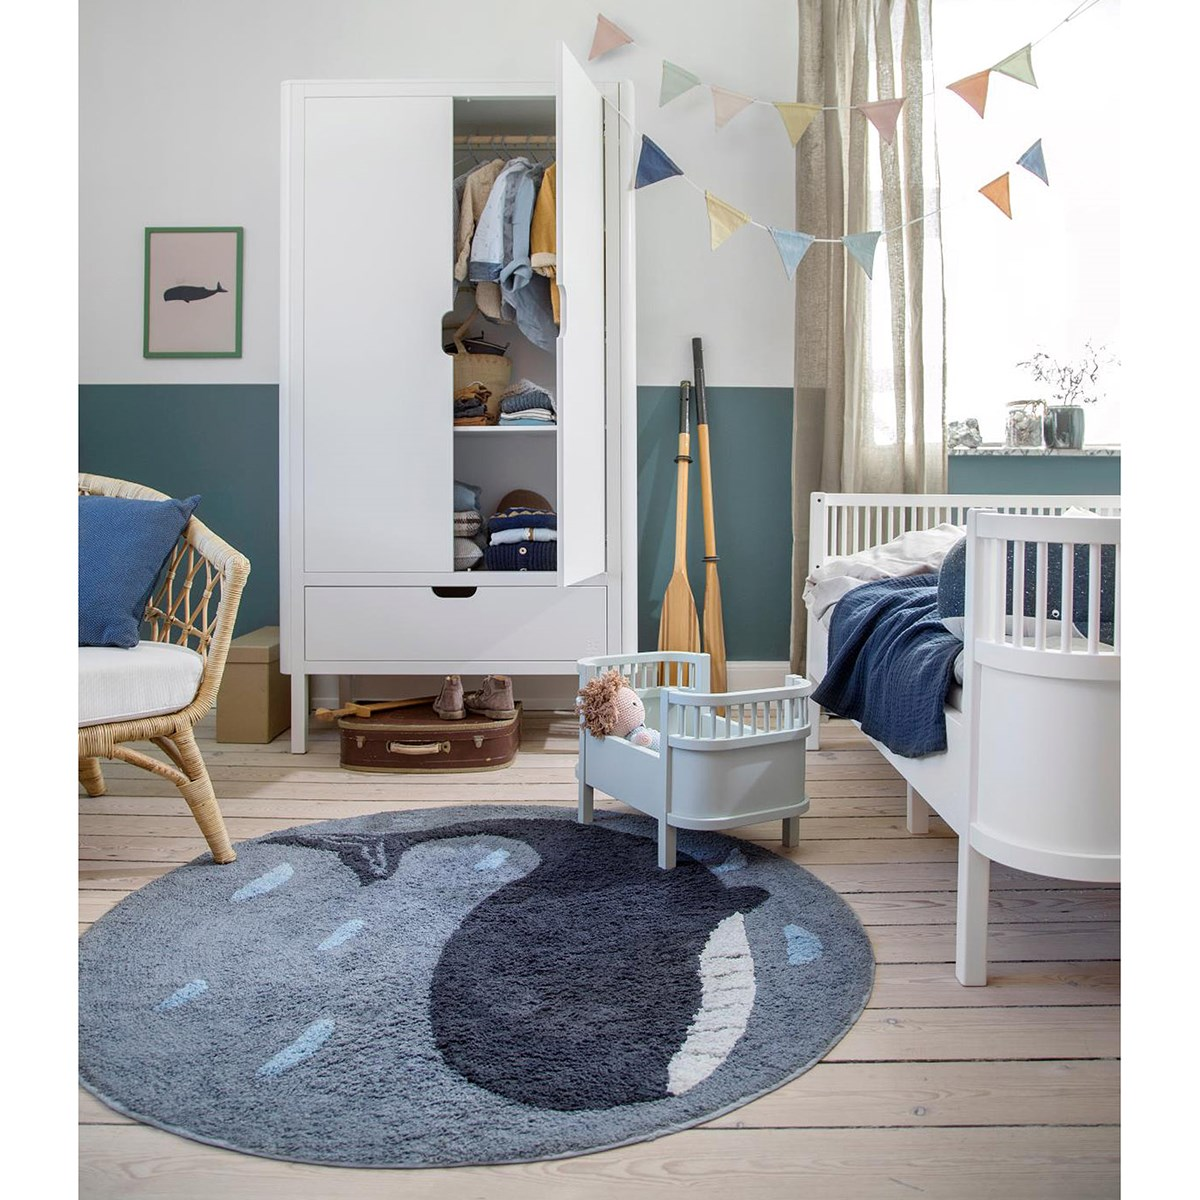 Picture of: Sebra Marion The Whale Woven Taeppe Navyblat Babyshop Dk